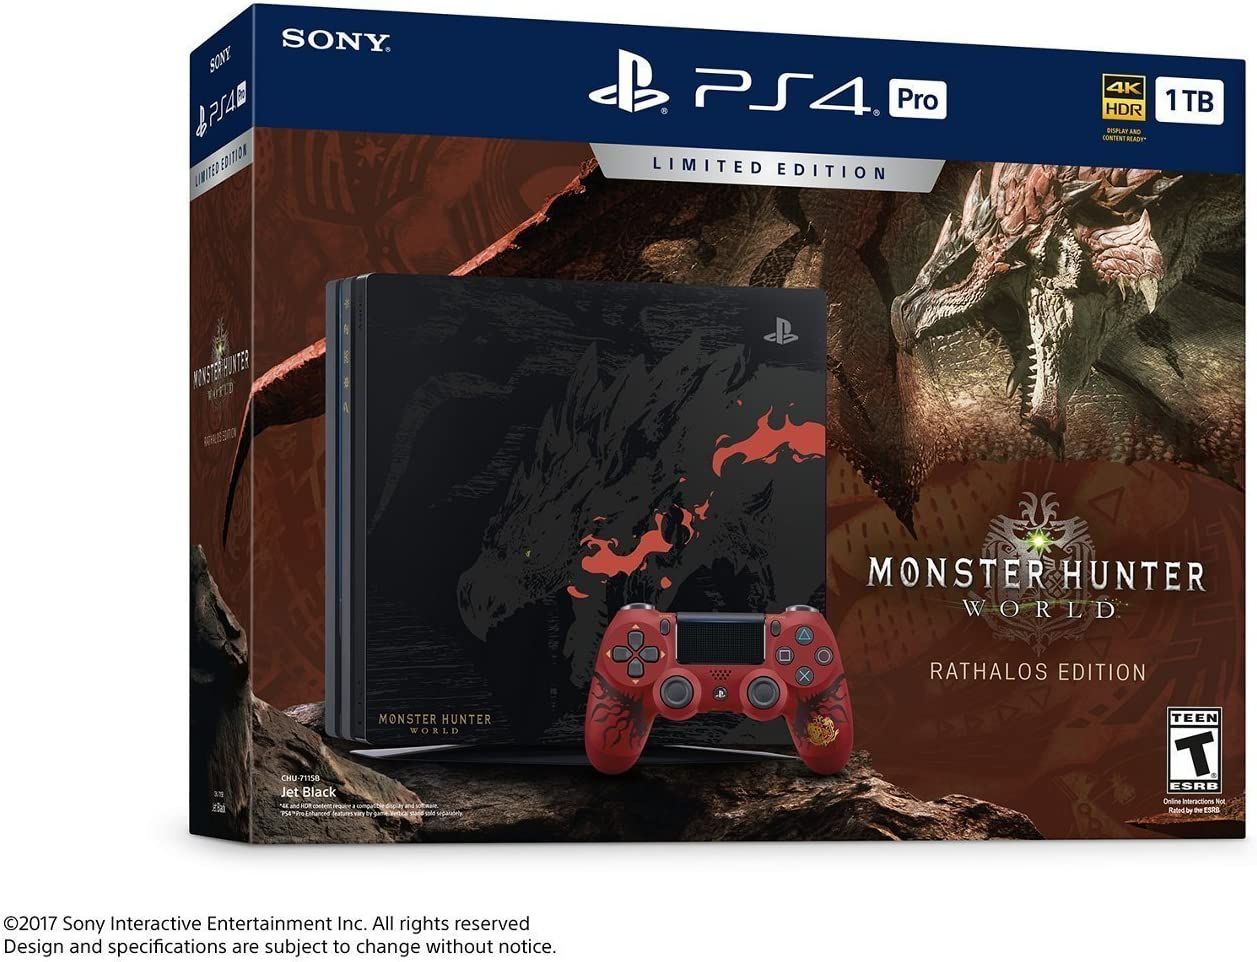 Playstation 4 Pro 1tb Monster Hunter World Limited Black Image Unavailable Not Available For